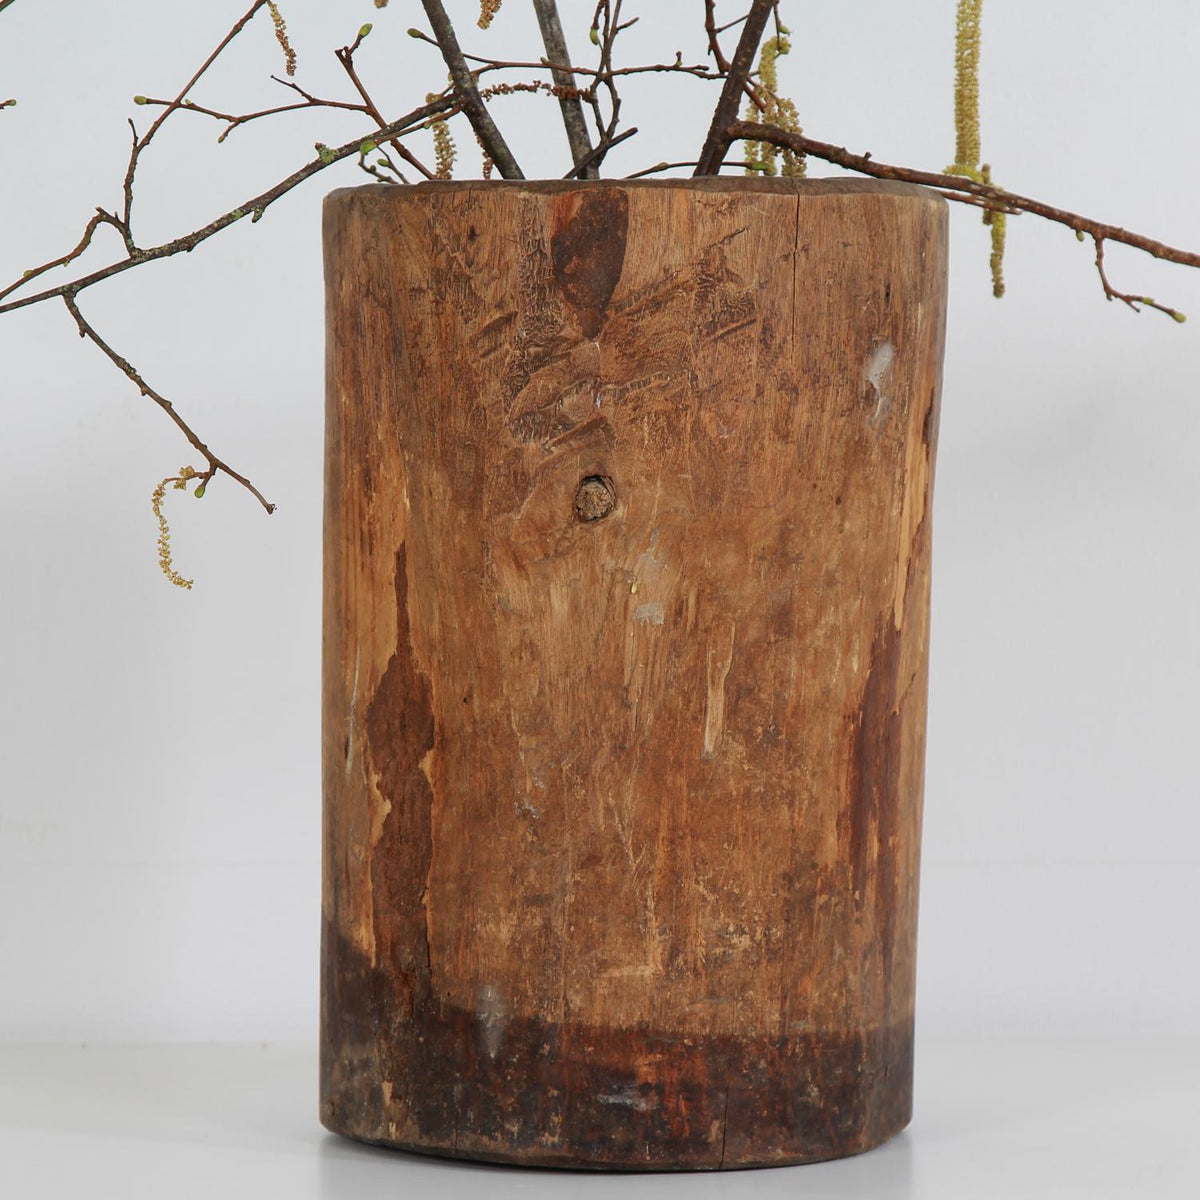 Rustic Antique Wooden Dug Out Mortar Planter